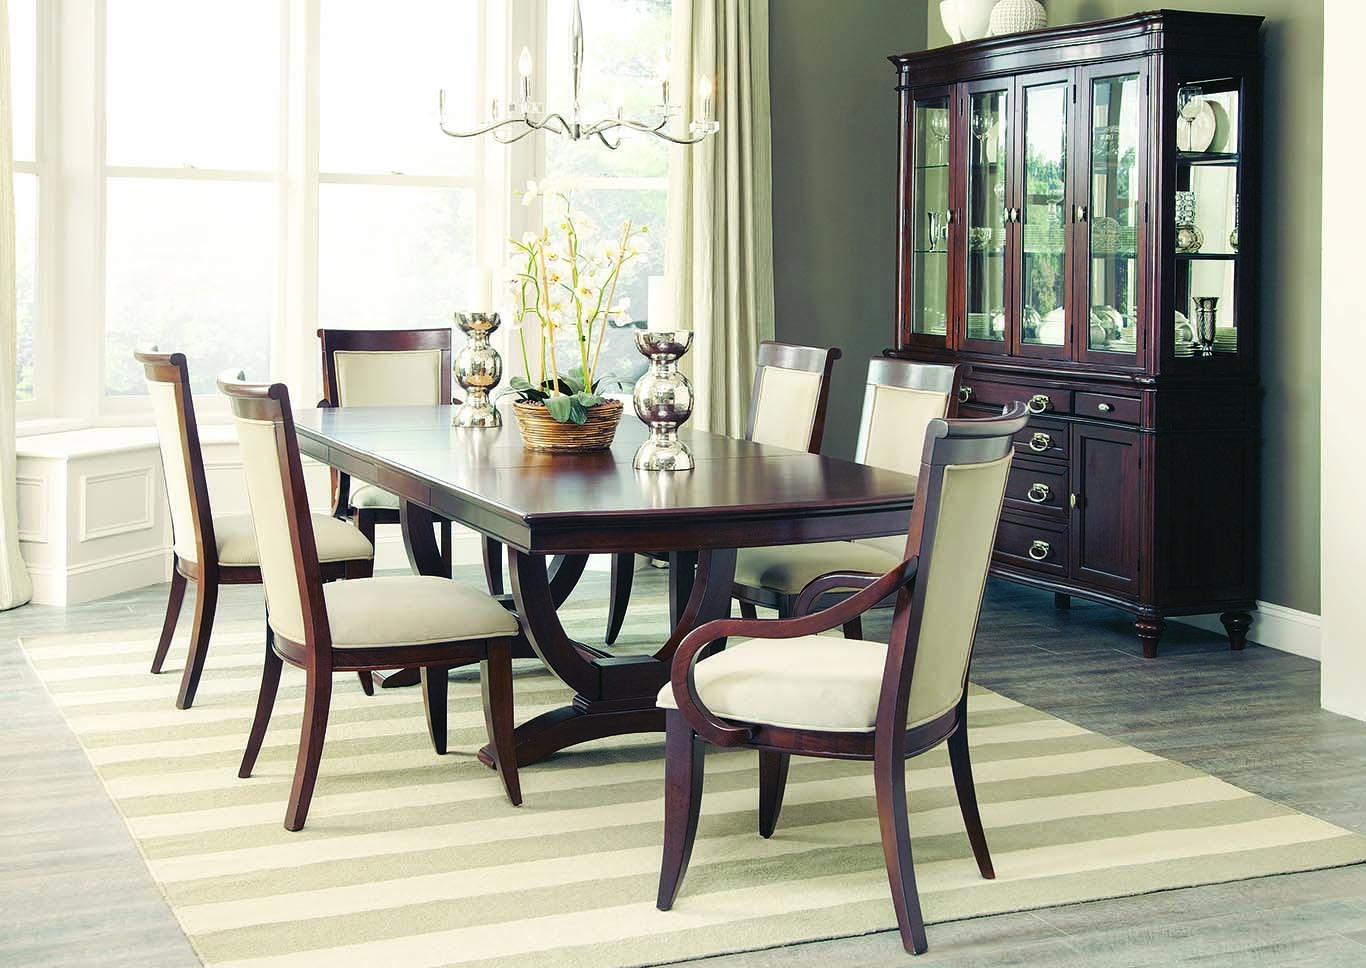 Furniture Expo – Baton Rouge, La Walnut Rectangular Extension Dining In Jaxon 5 Piece Extension Round Dining Sets With Wood Chairs (Image 9 of 25)